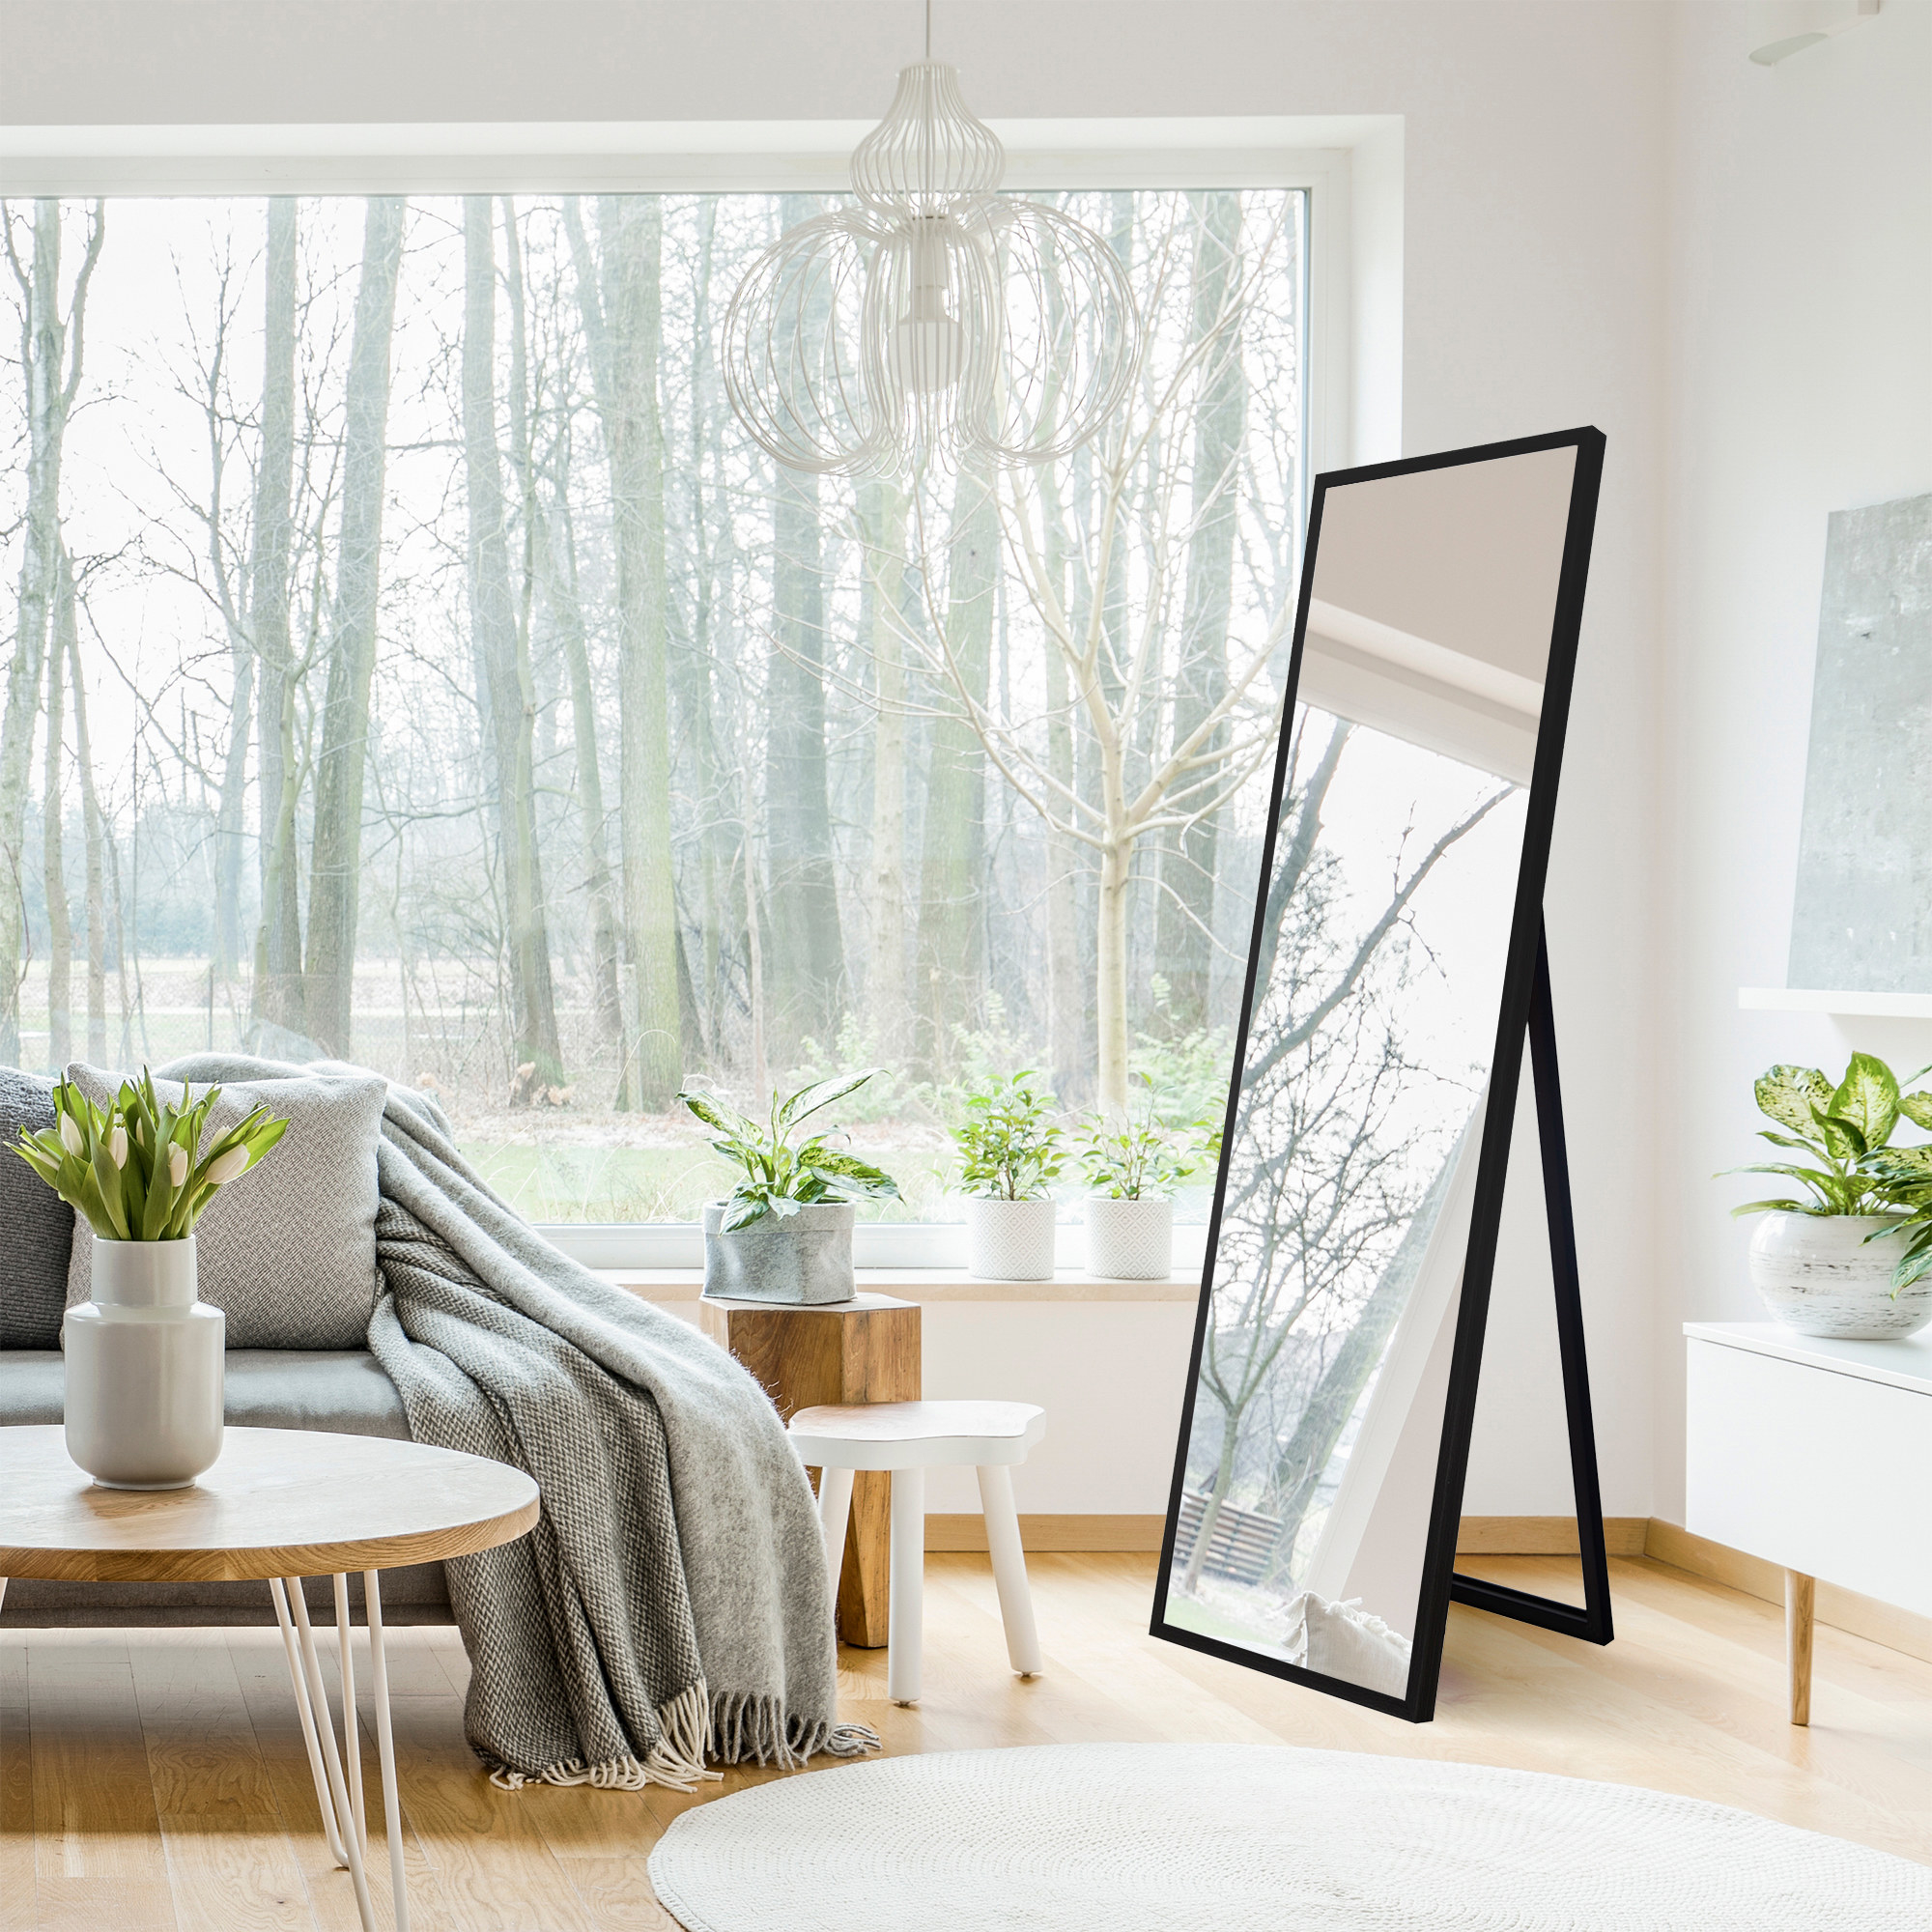 A full length easel mirror with black edges